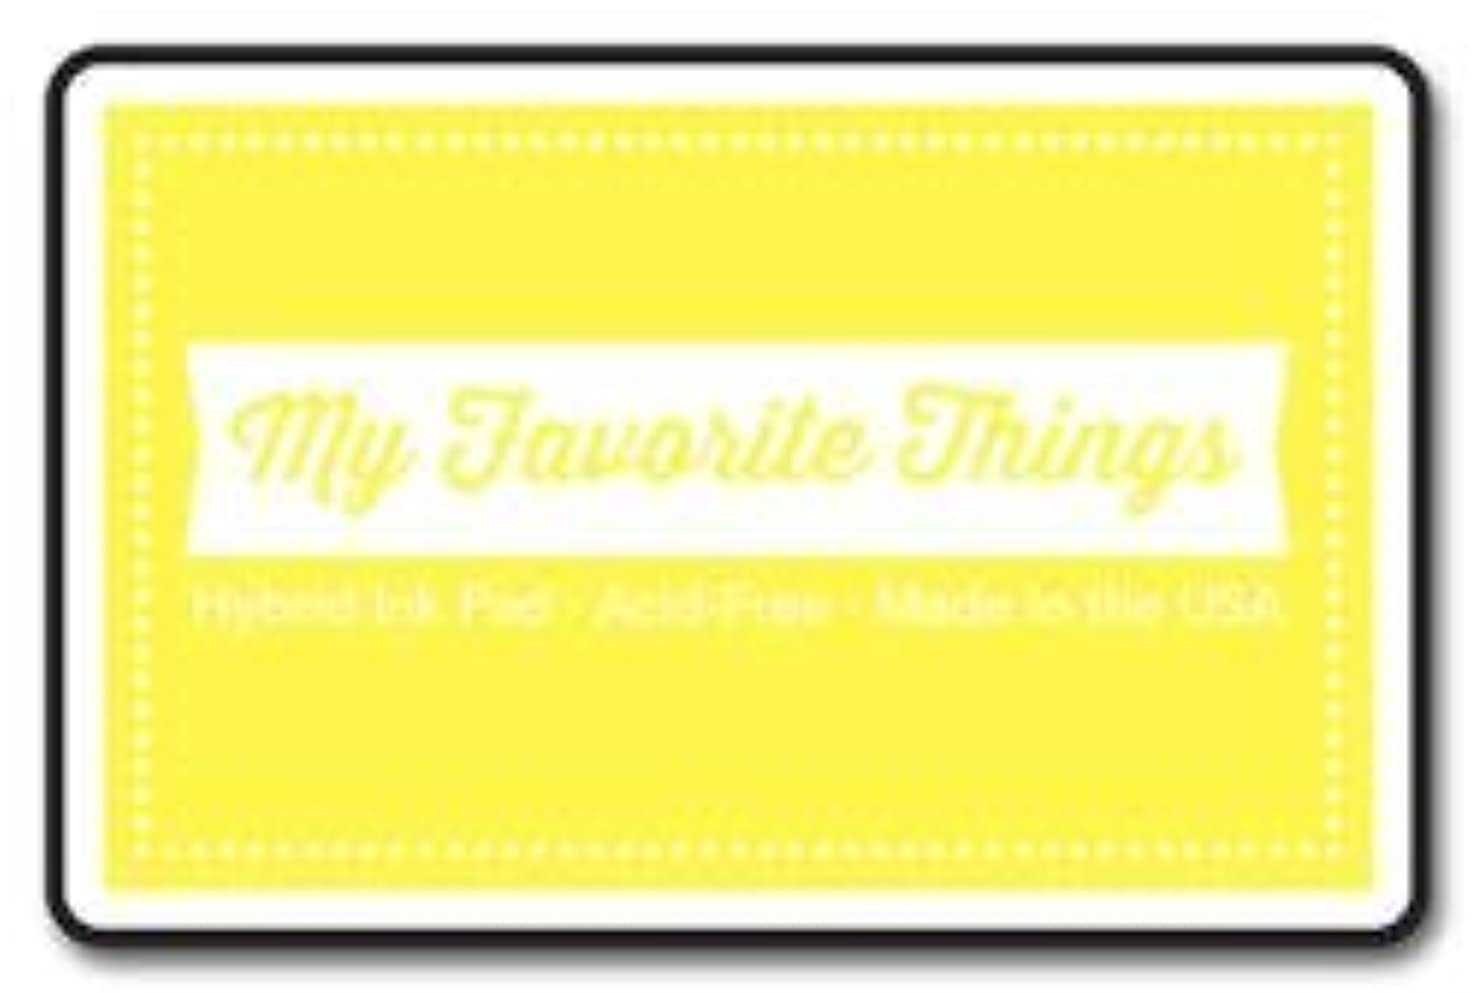 My Favorite Things HPAD-67 Hybrid Ink Pad 3 x 2 in. - Sunshine